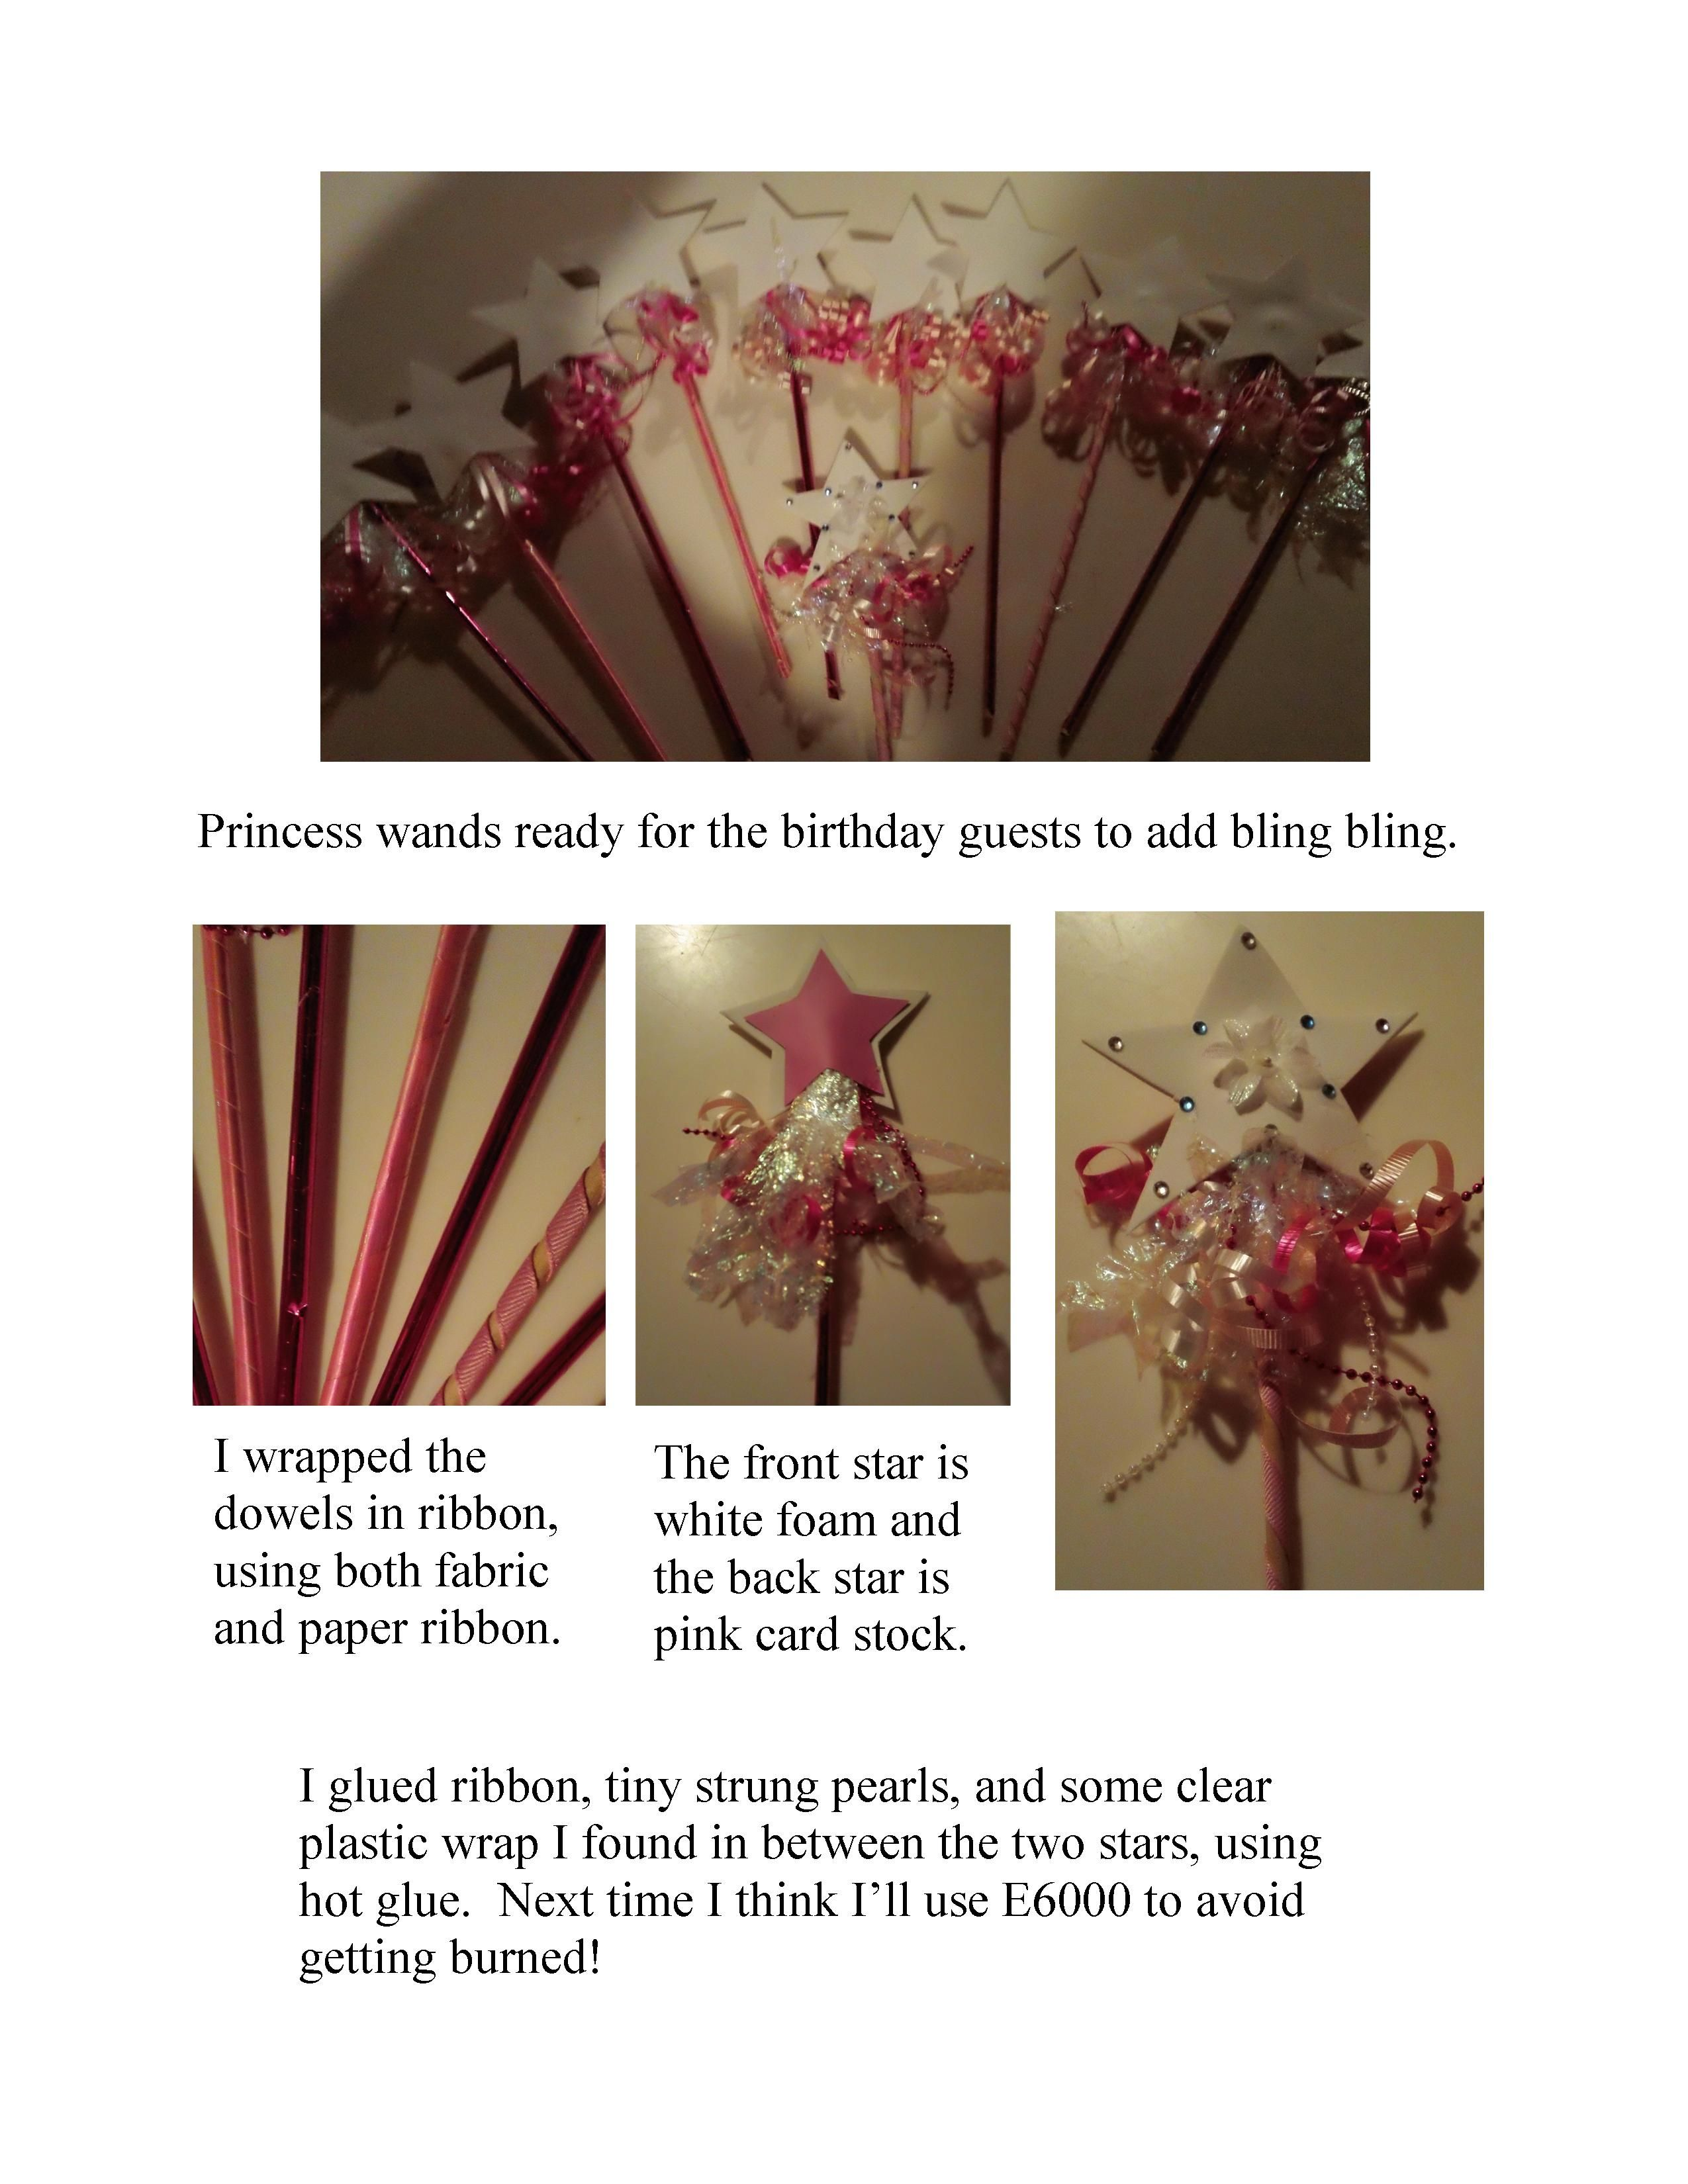 I made these wands using dowels, fun foam, ribbon, etc.  Ready for decorating!